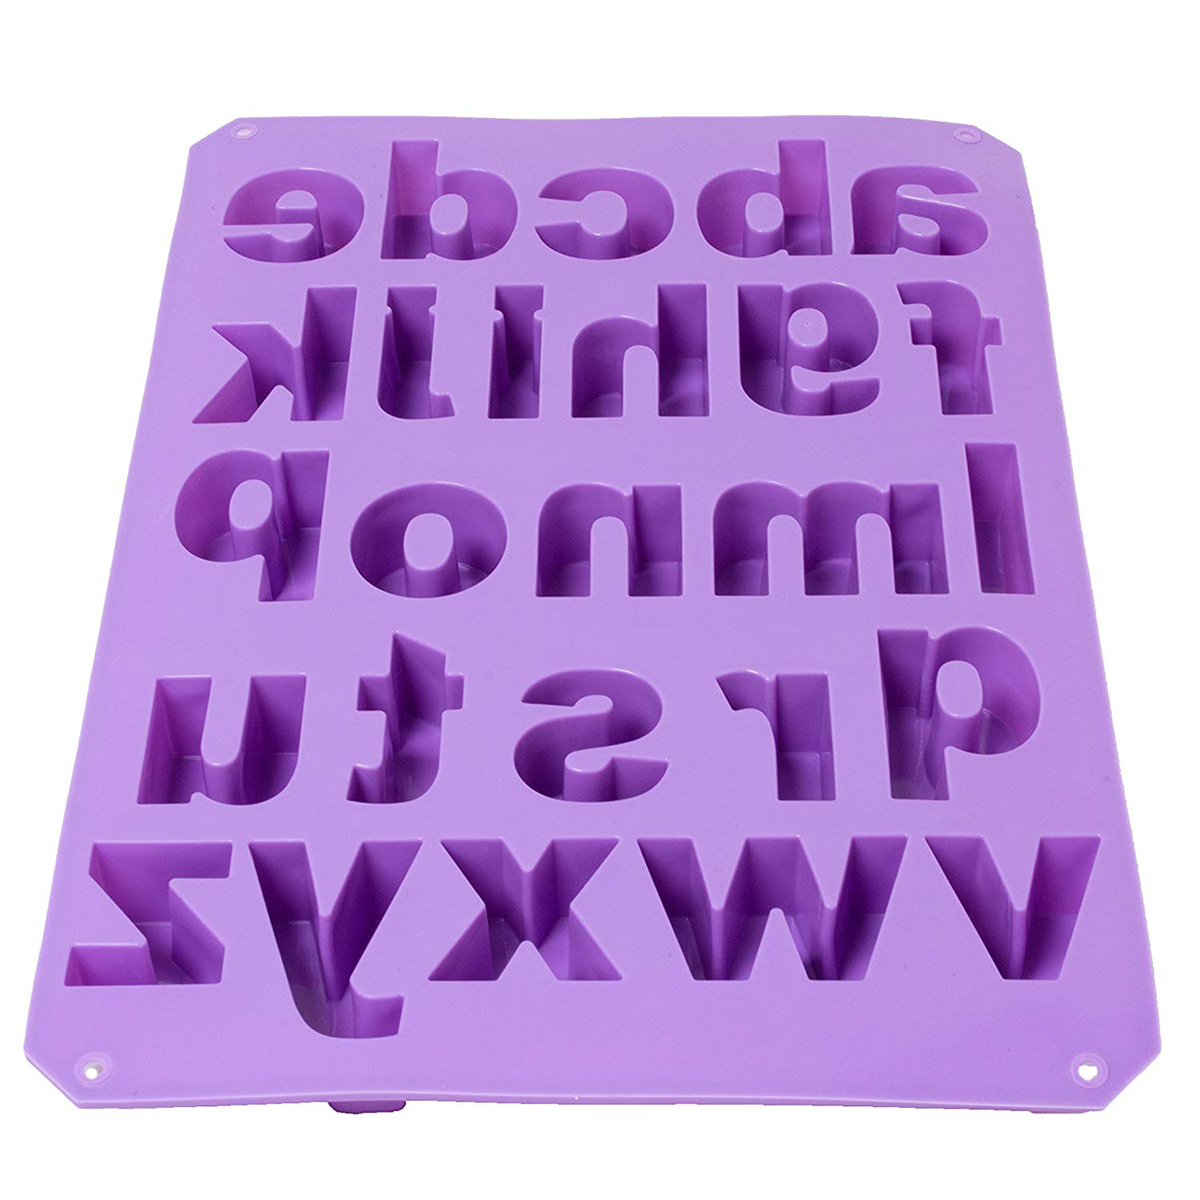 Alphabet Silicone Mould Cake Decorating Candy Cookie Chocolate Baking Mold DIY